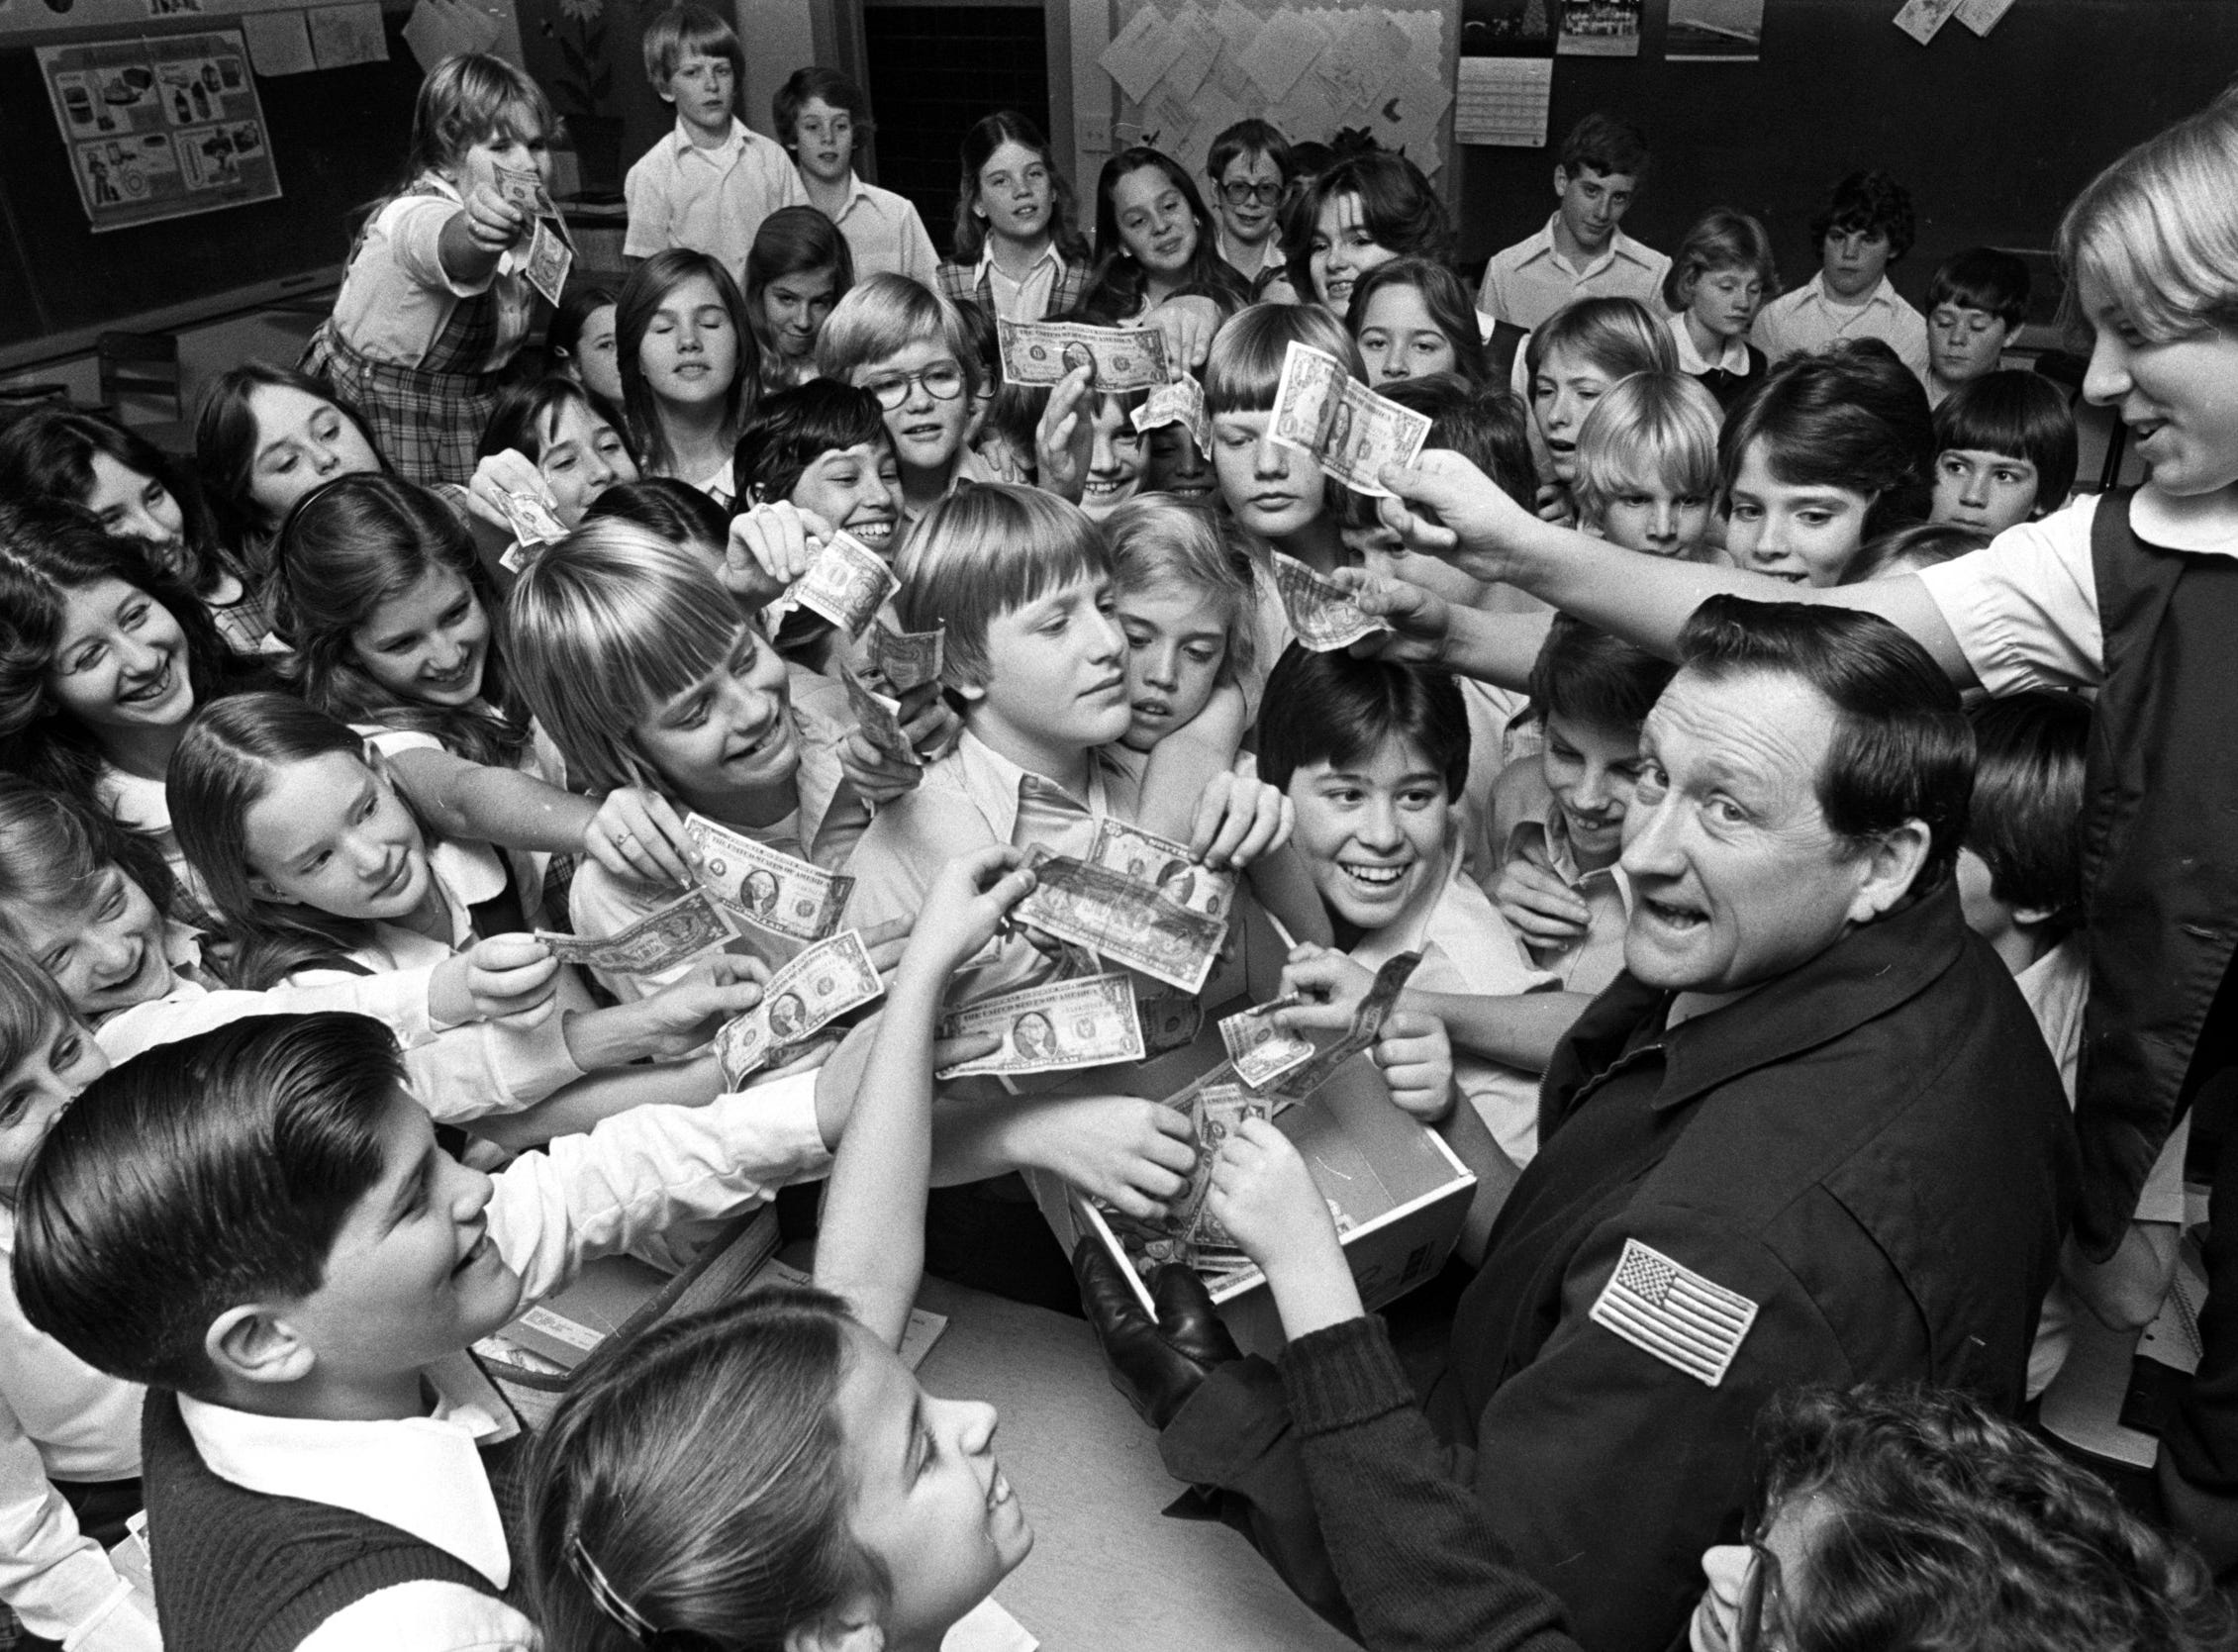 Fire Department Lt. Bob Lyles (Right Foreground) received $100 in donations for the March of Dimes from sixth graders at Holy Rosary School on 18 Dec 1978.  The money was raised by baking and selling cakes, cupcakes and other goodies.